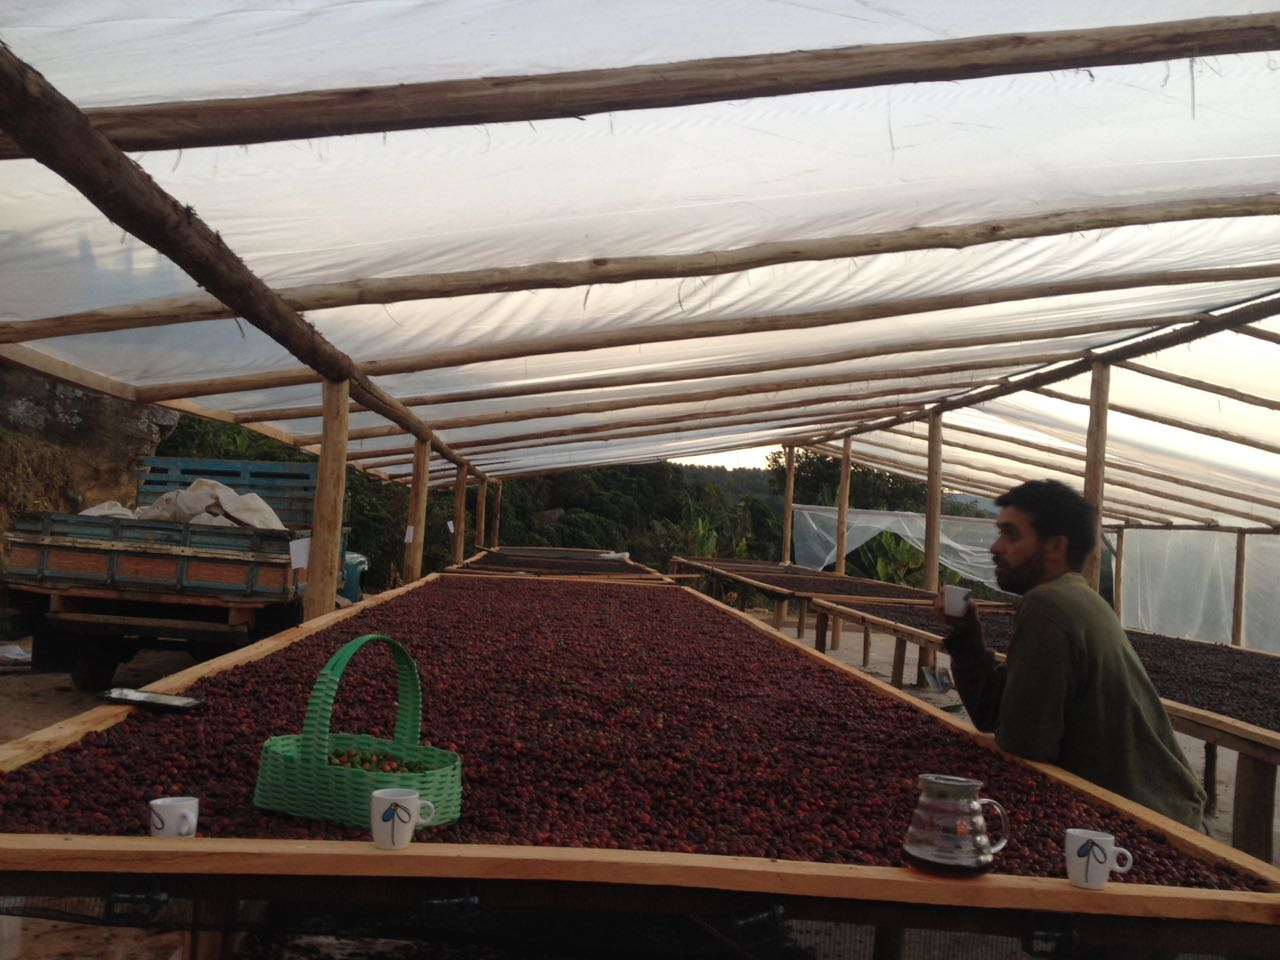 Sorting out Coffee Beans